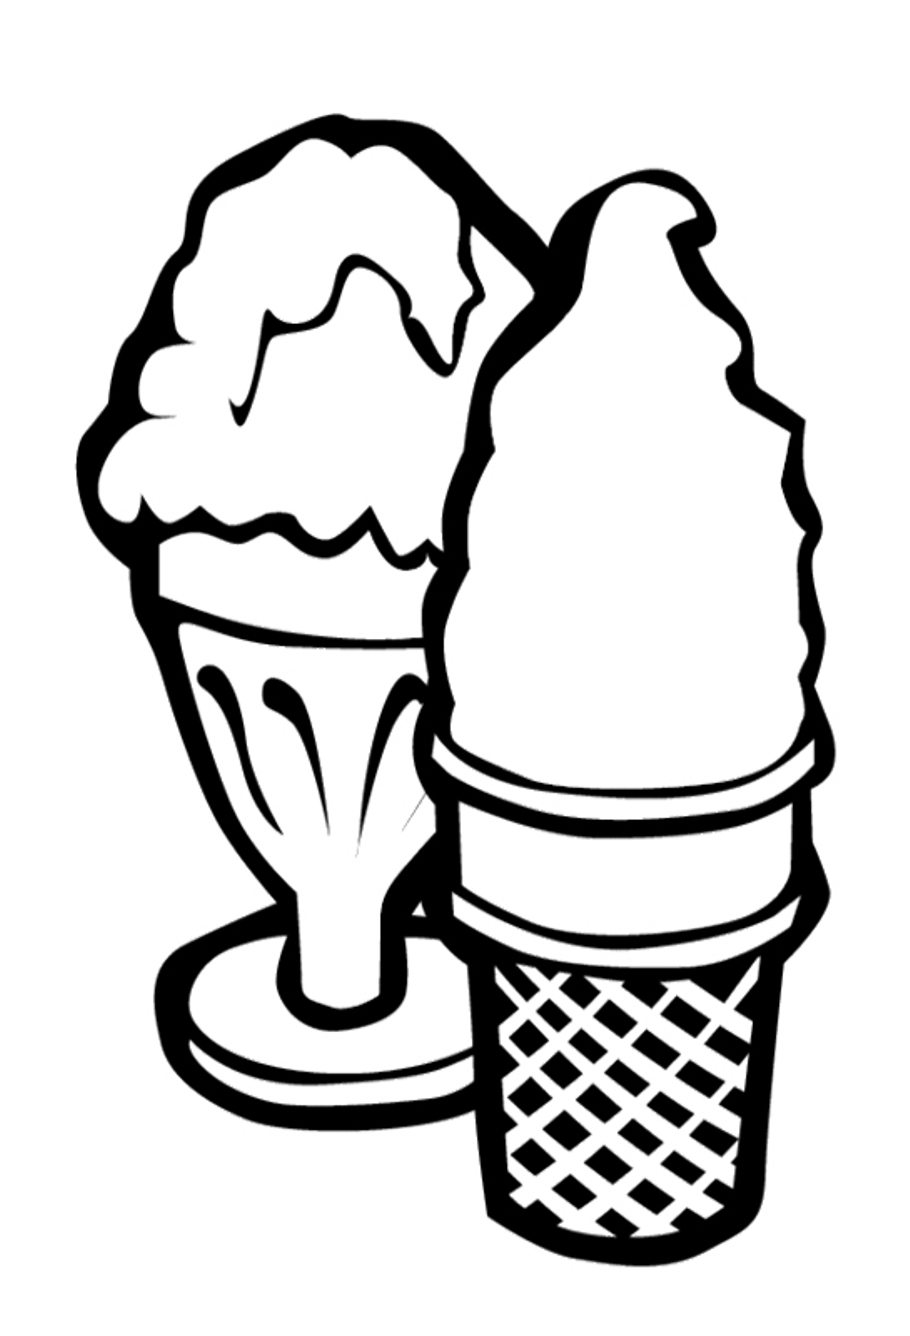 coloring pictures of icecream ice cream coloring pages for kids free large images pictures icecream of coloring